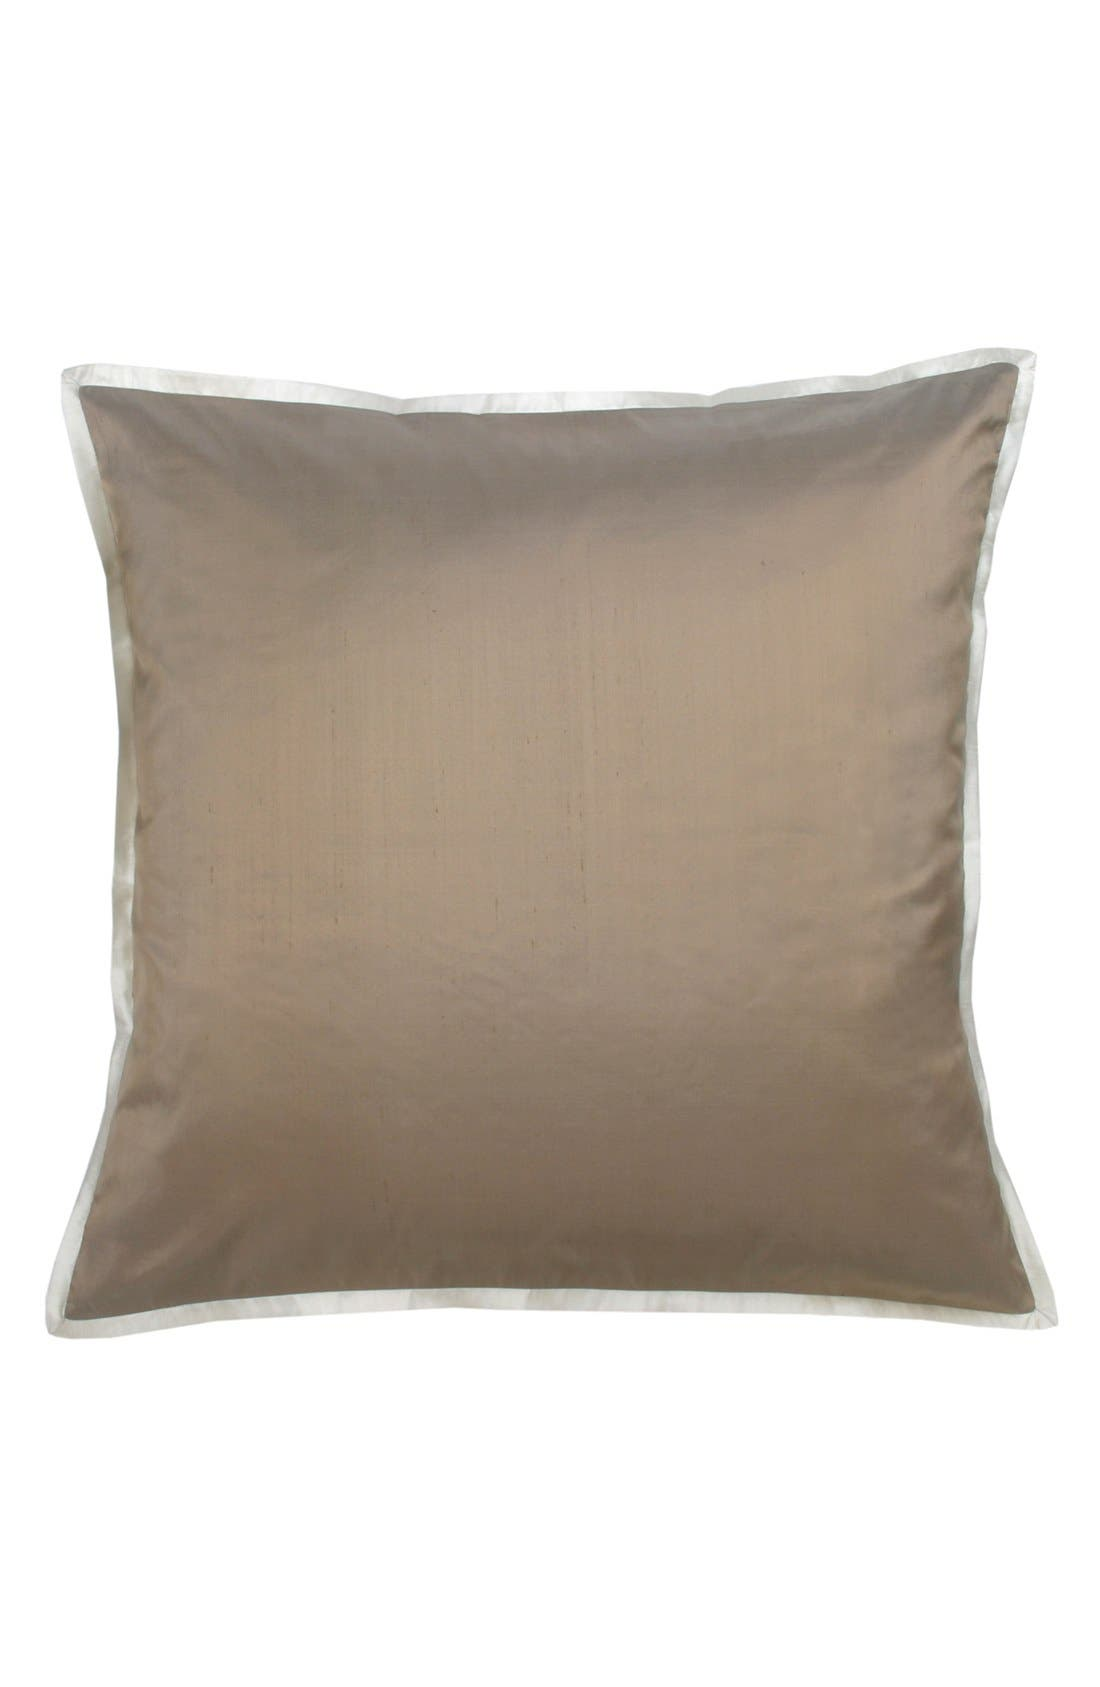 Main Image - Blissliving Home 'Lucca Bronze' Euro Pillow (Online Only)